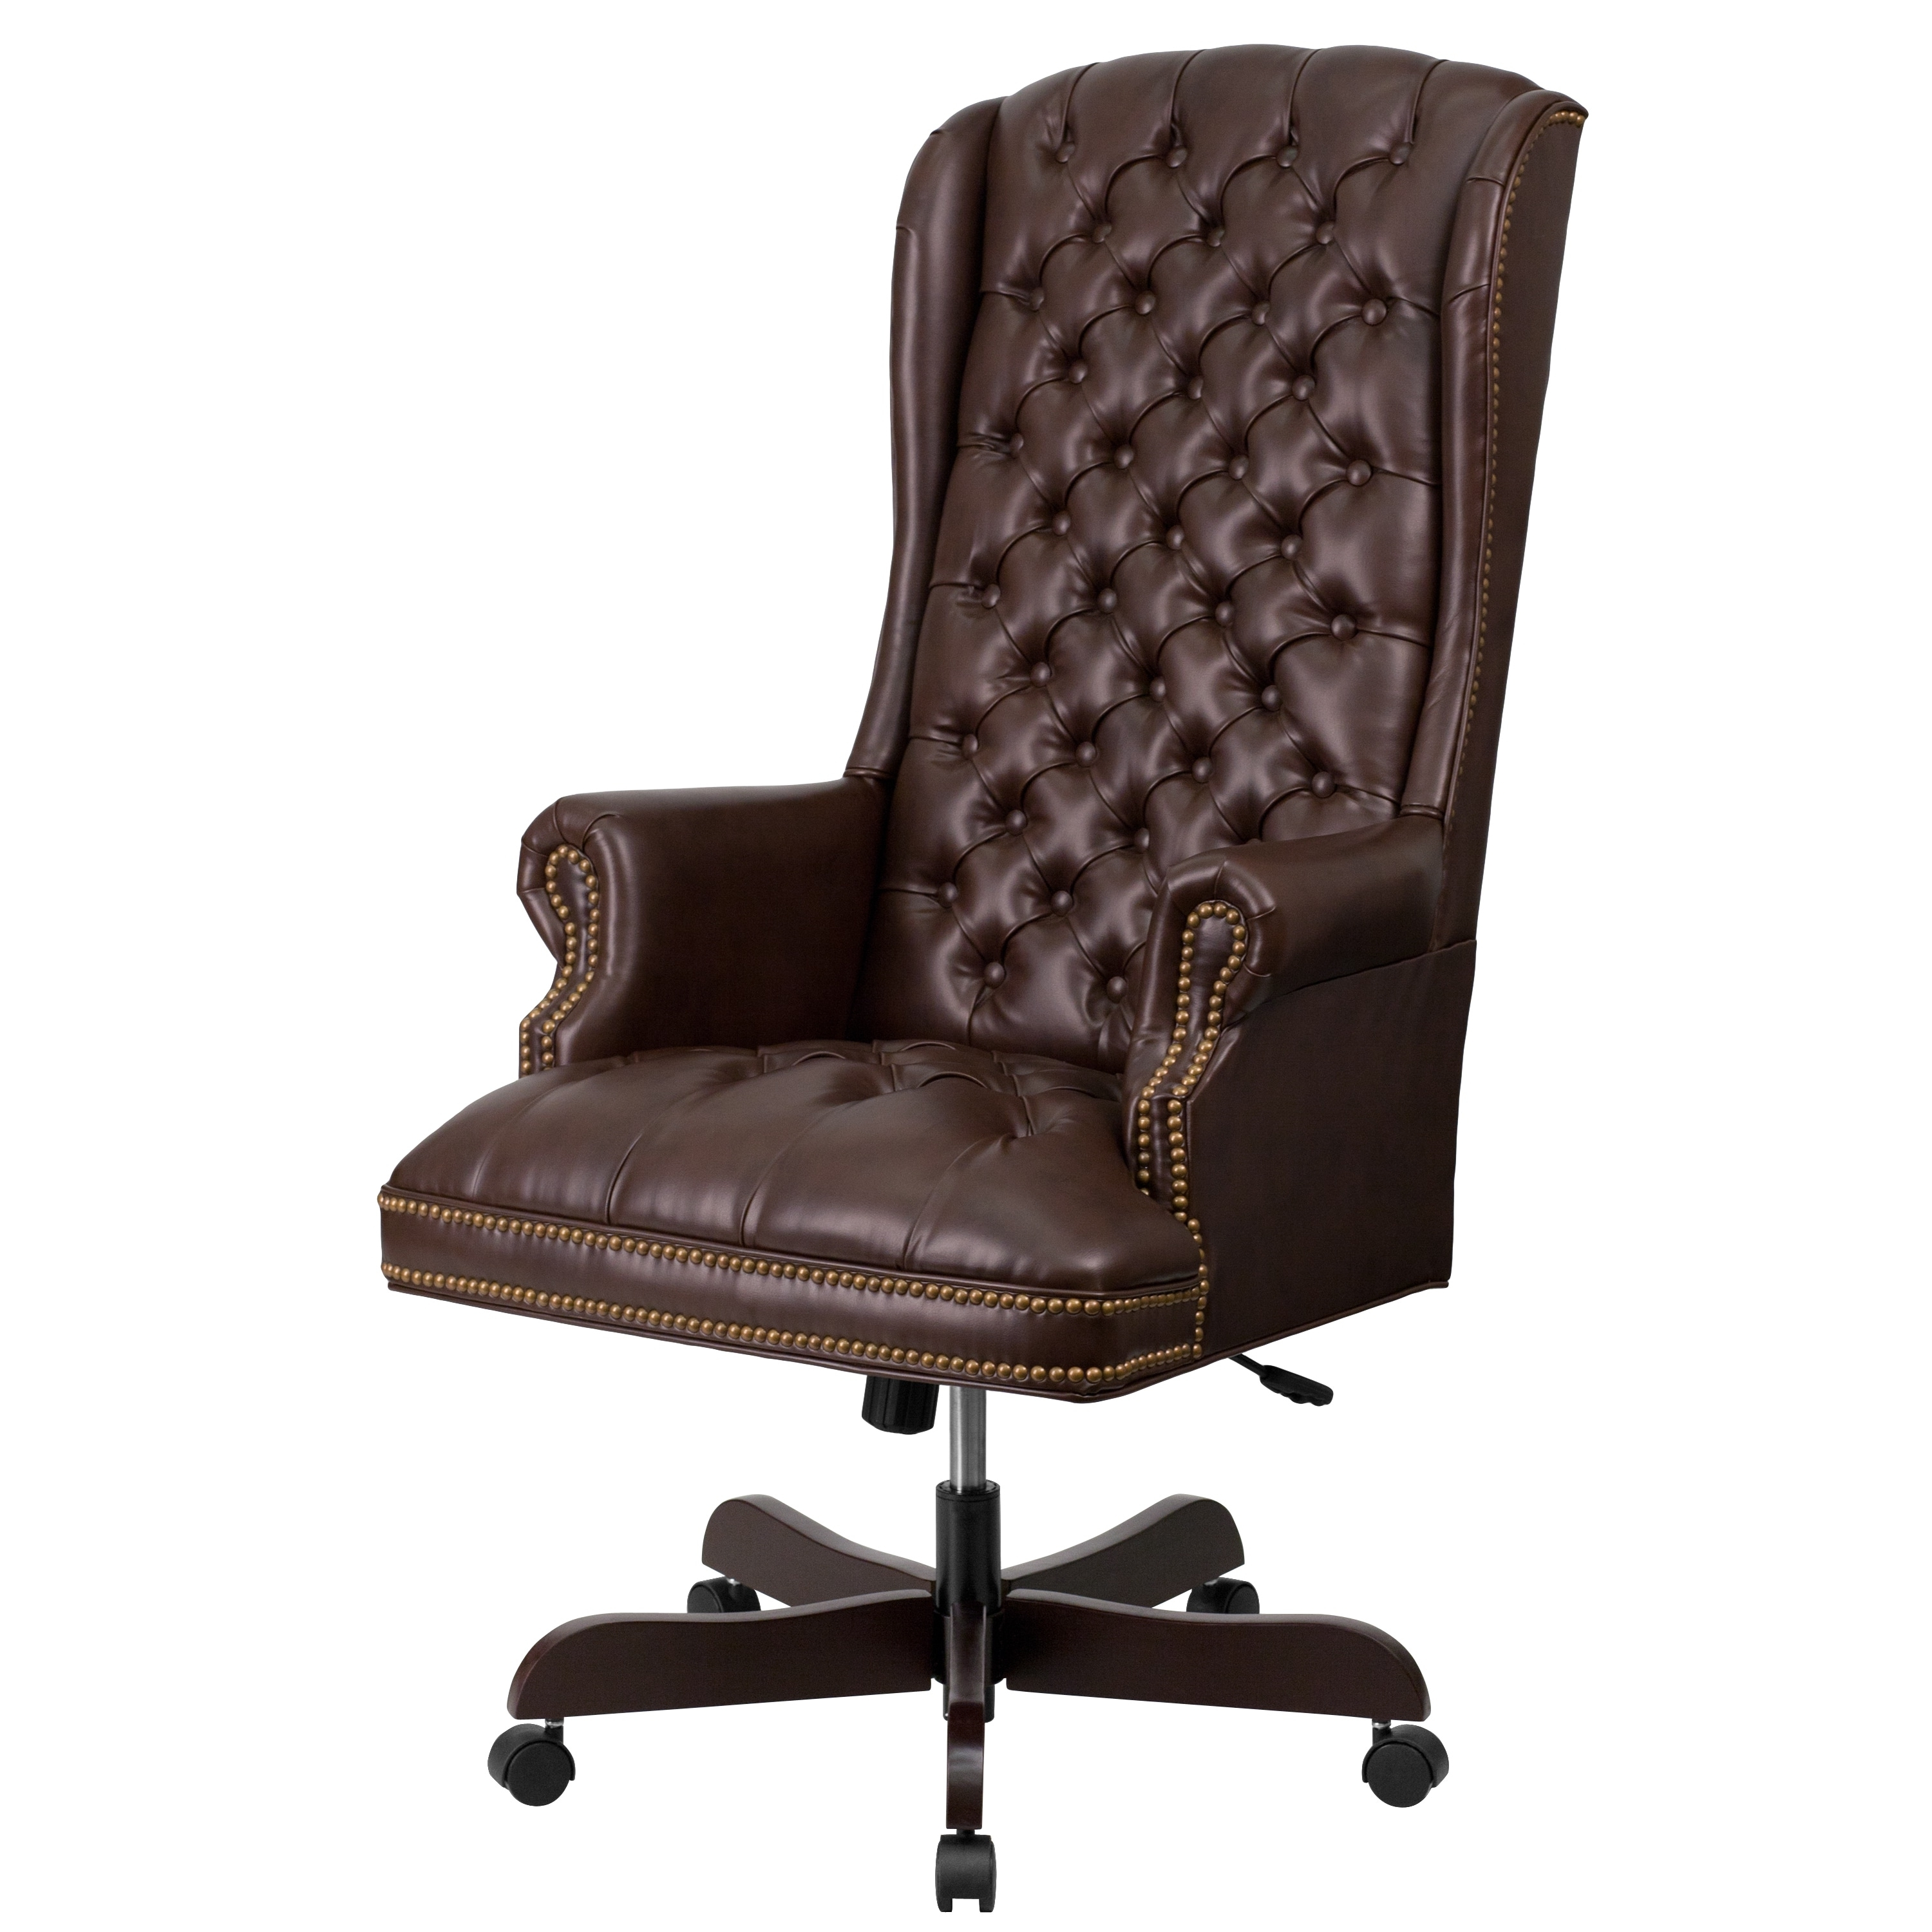 High Back Traditional Tufted Leather Executive Office Chair – Free Inside Well Known Genuine Leather Executive Office Chairs (View 6 of 20)